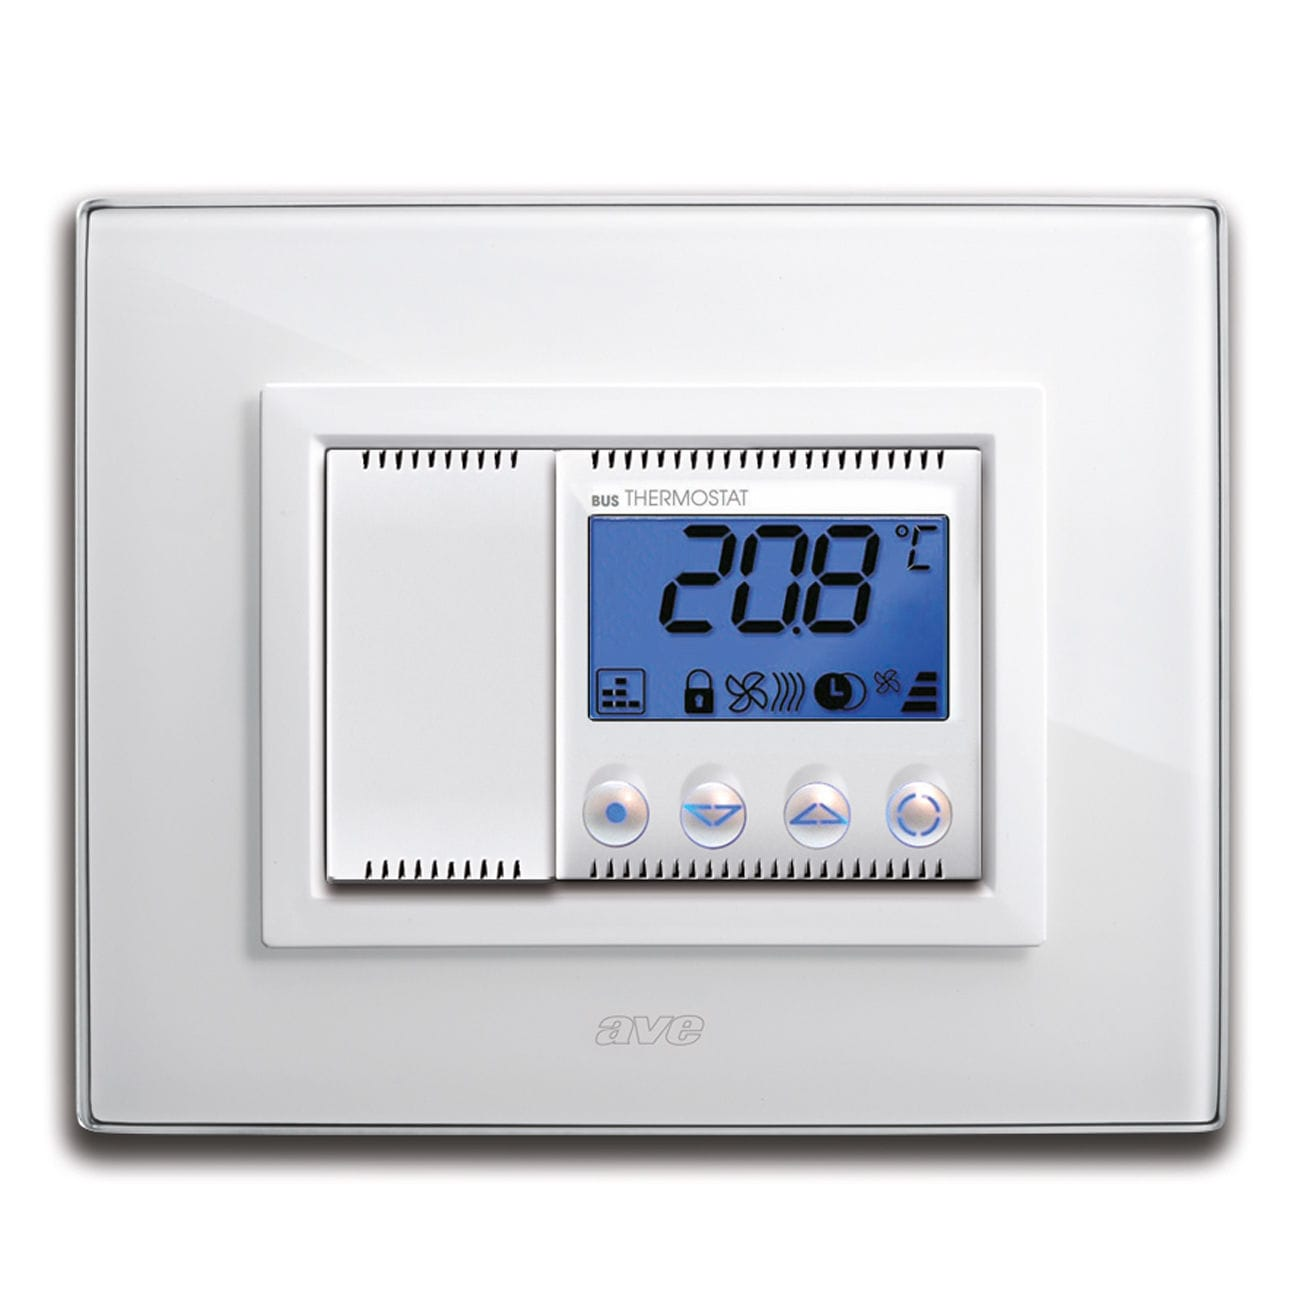 Electronic Thermostat Recessed Wall For Heating Air Conditioner Conditioning Domina Hotel